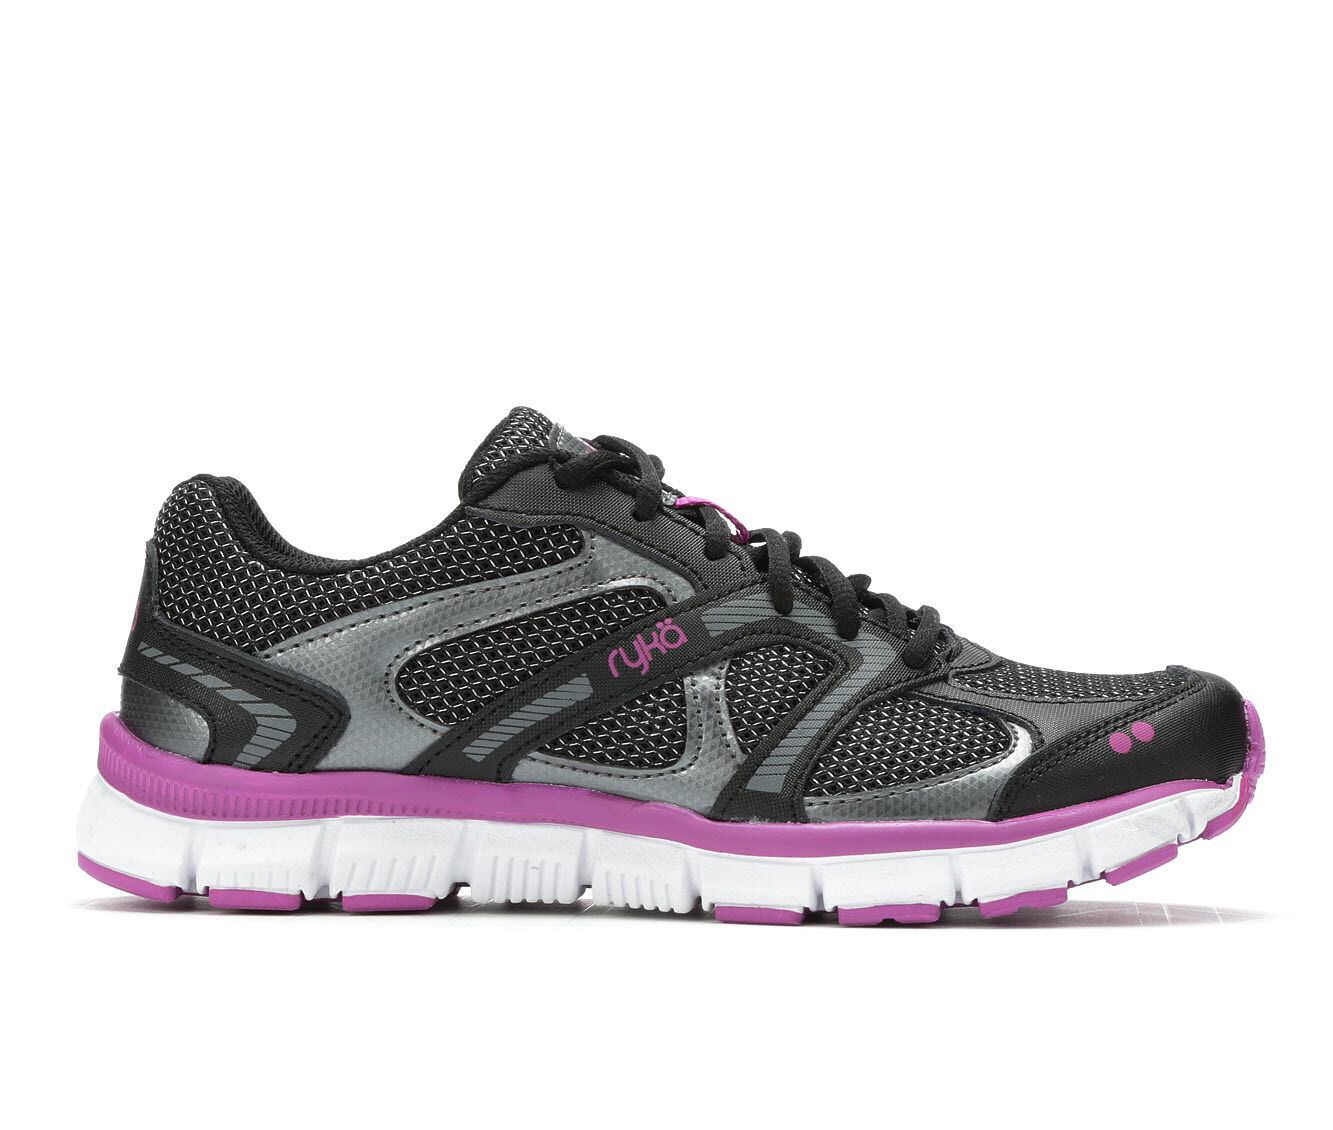 finishline cheap online Women's Ryka Heather Training Shoes 2014 new sale online pictures sale online new for sale cheap brand new unisex OfV7H